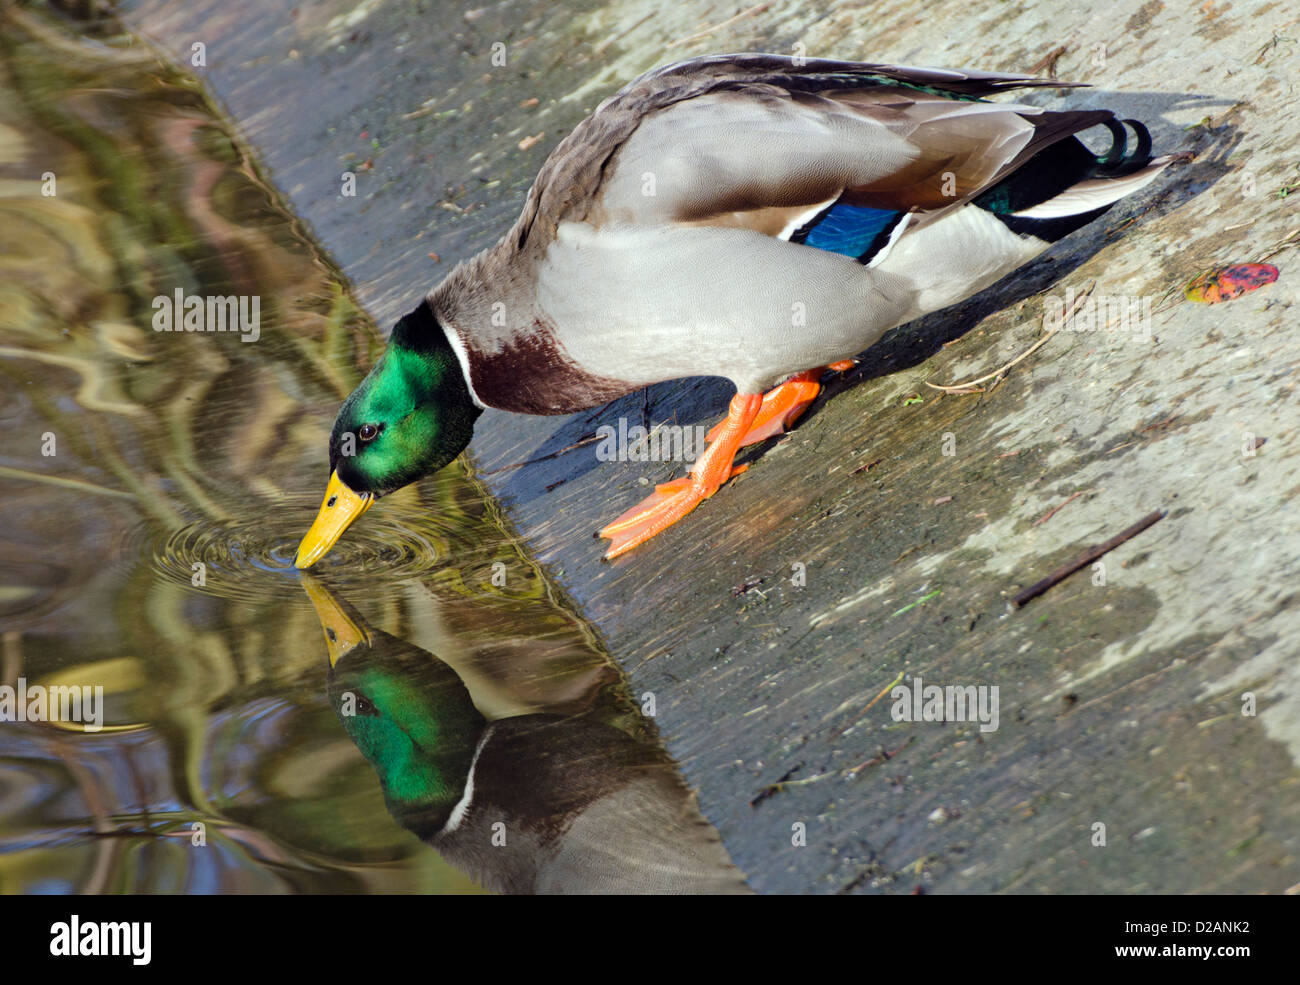 Male Mallard duck (Anas platyrhynchos) climbing down a steep bank and looking at his reflection in water. - Stock Image